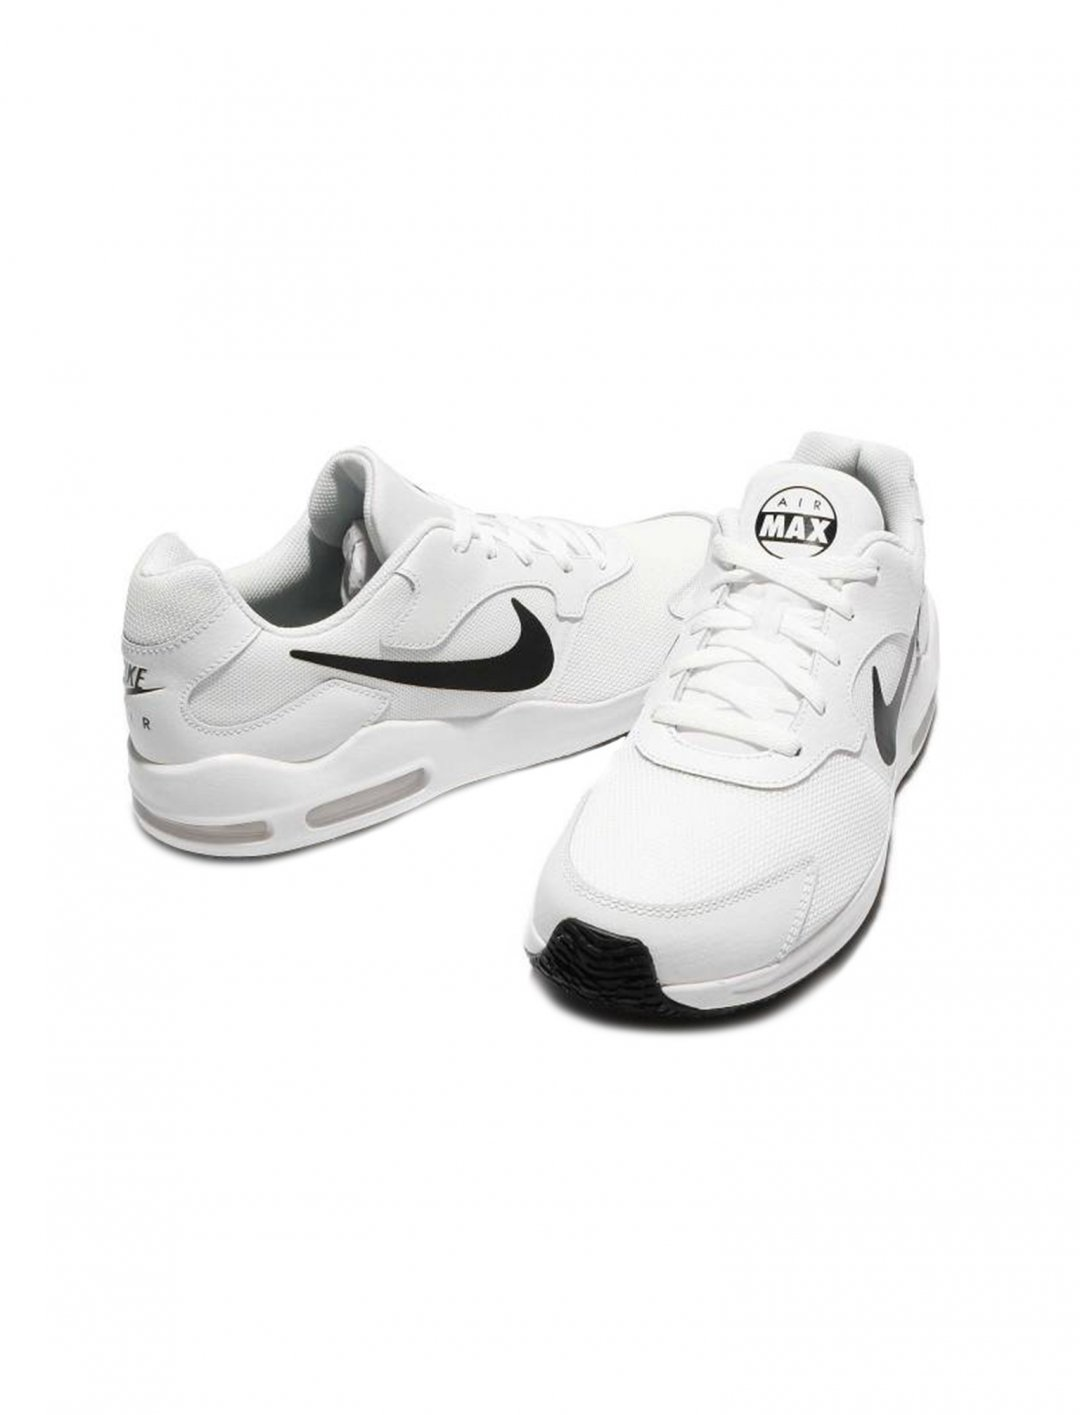 "Nike Air Max Guile Trainers {""id"":12,""product_section_id"":1,""name"":""Shoes"",""order"":12} Nike"